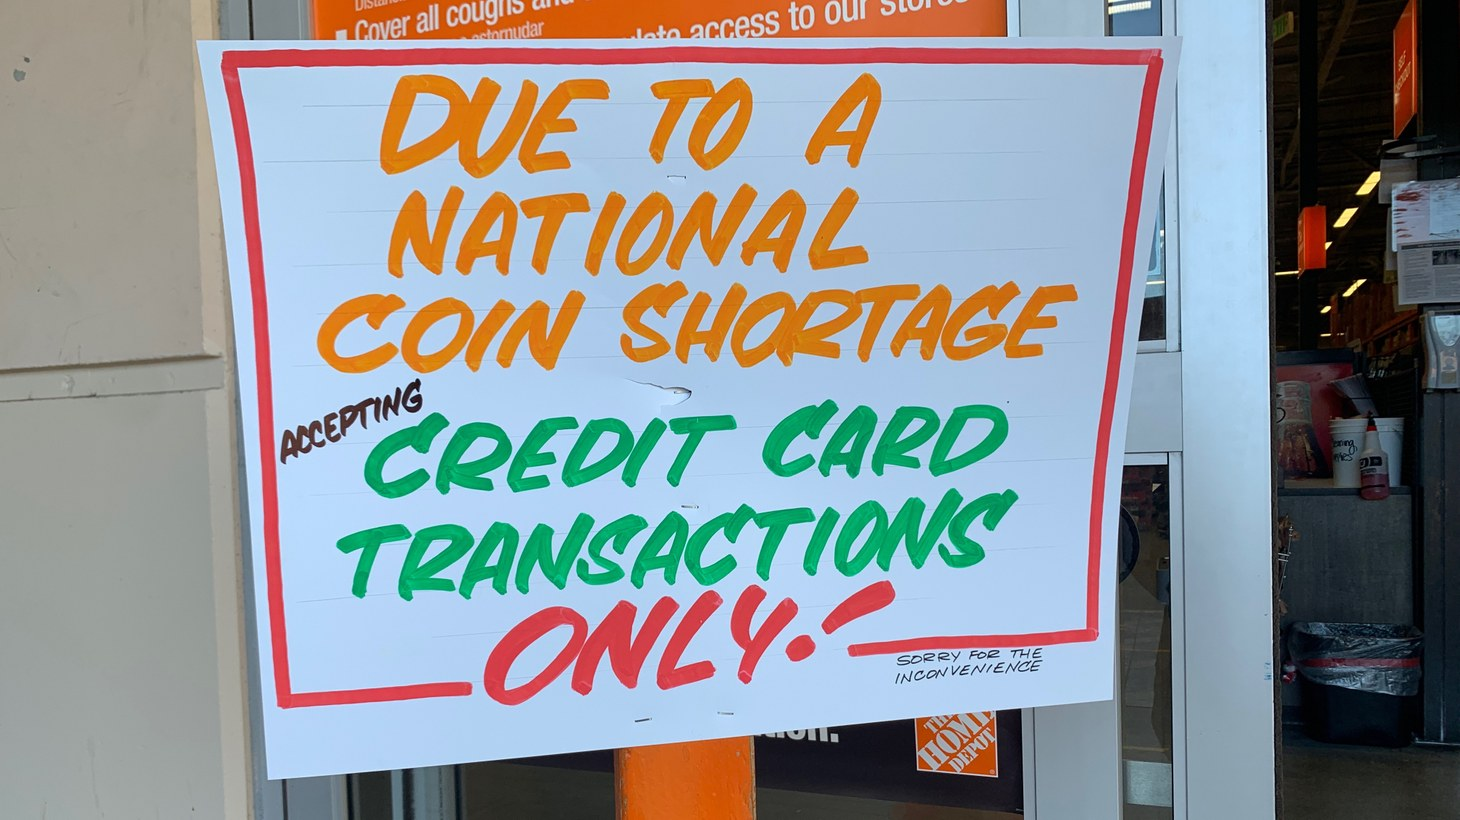 A sign at Home Depot in northeast Los Angeles says the store is taking only credit card payments due to a national coin shortage.